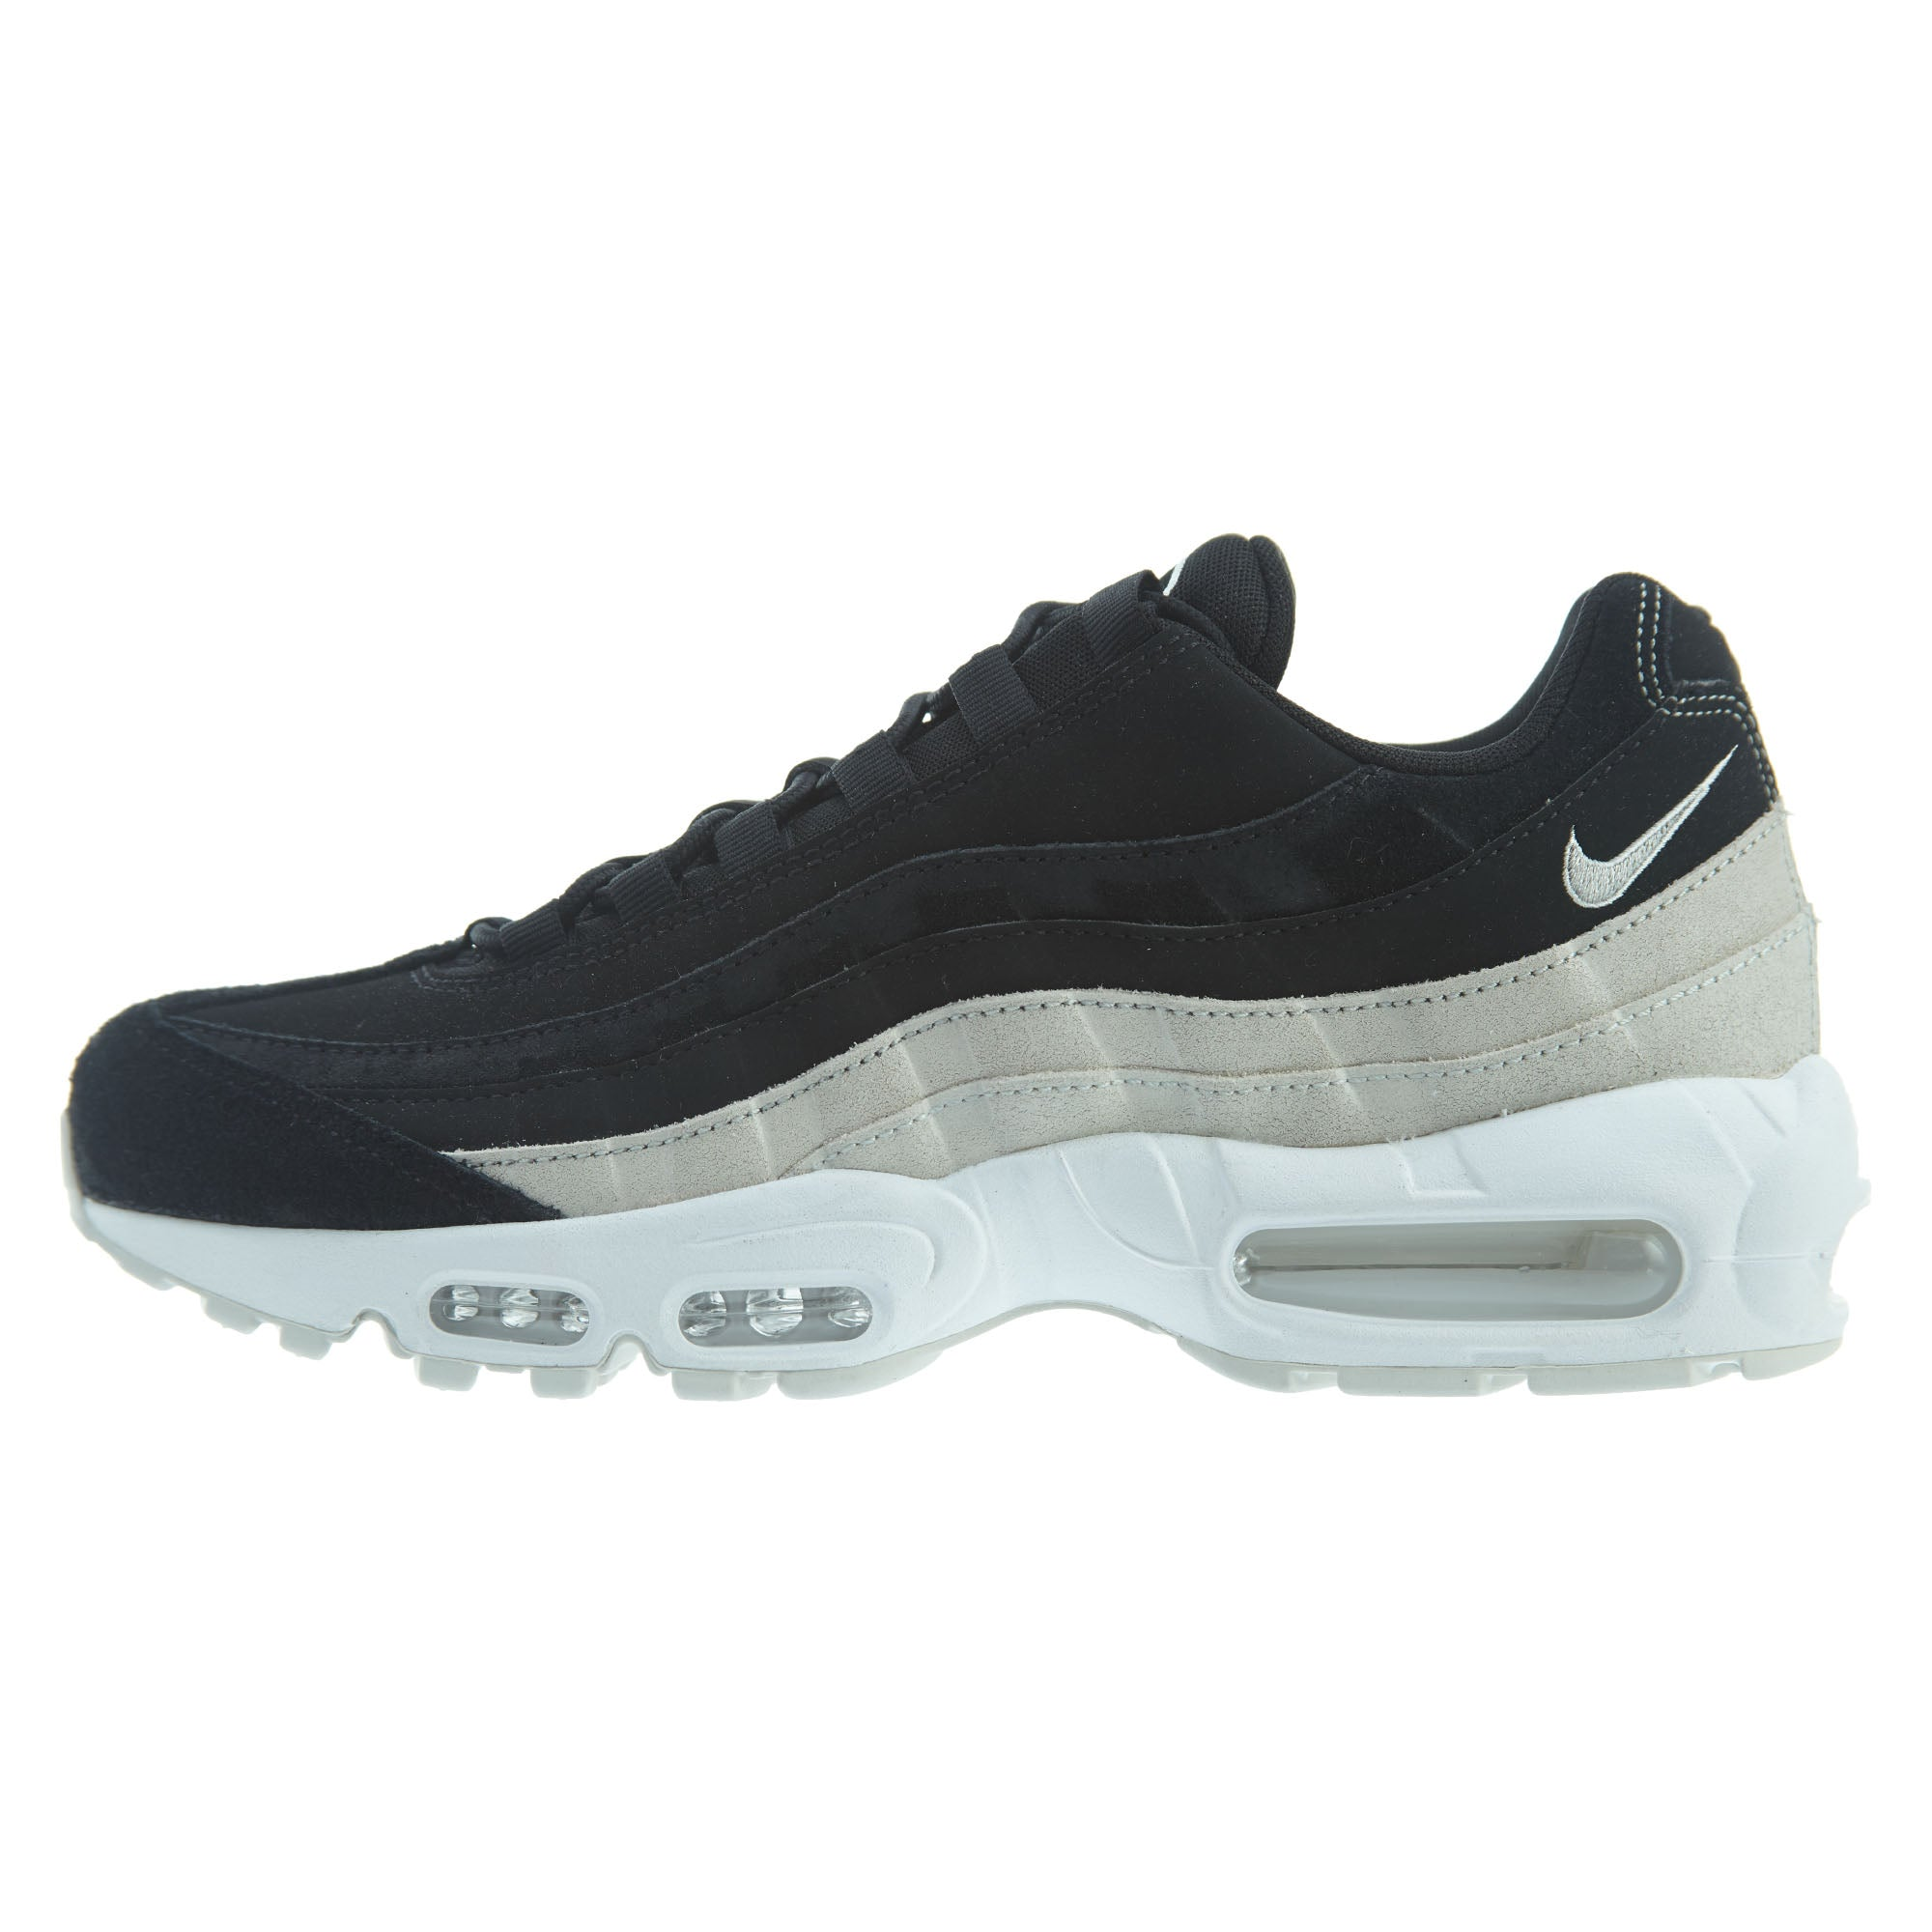 Nike Air Max 95 Prm Womens Style : 807443 017 – Sneaker Experts